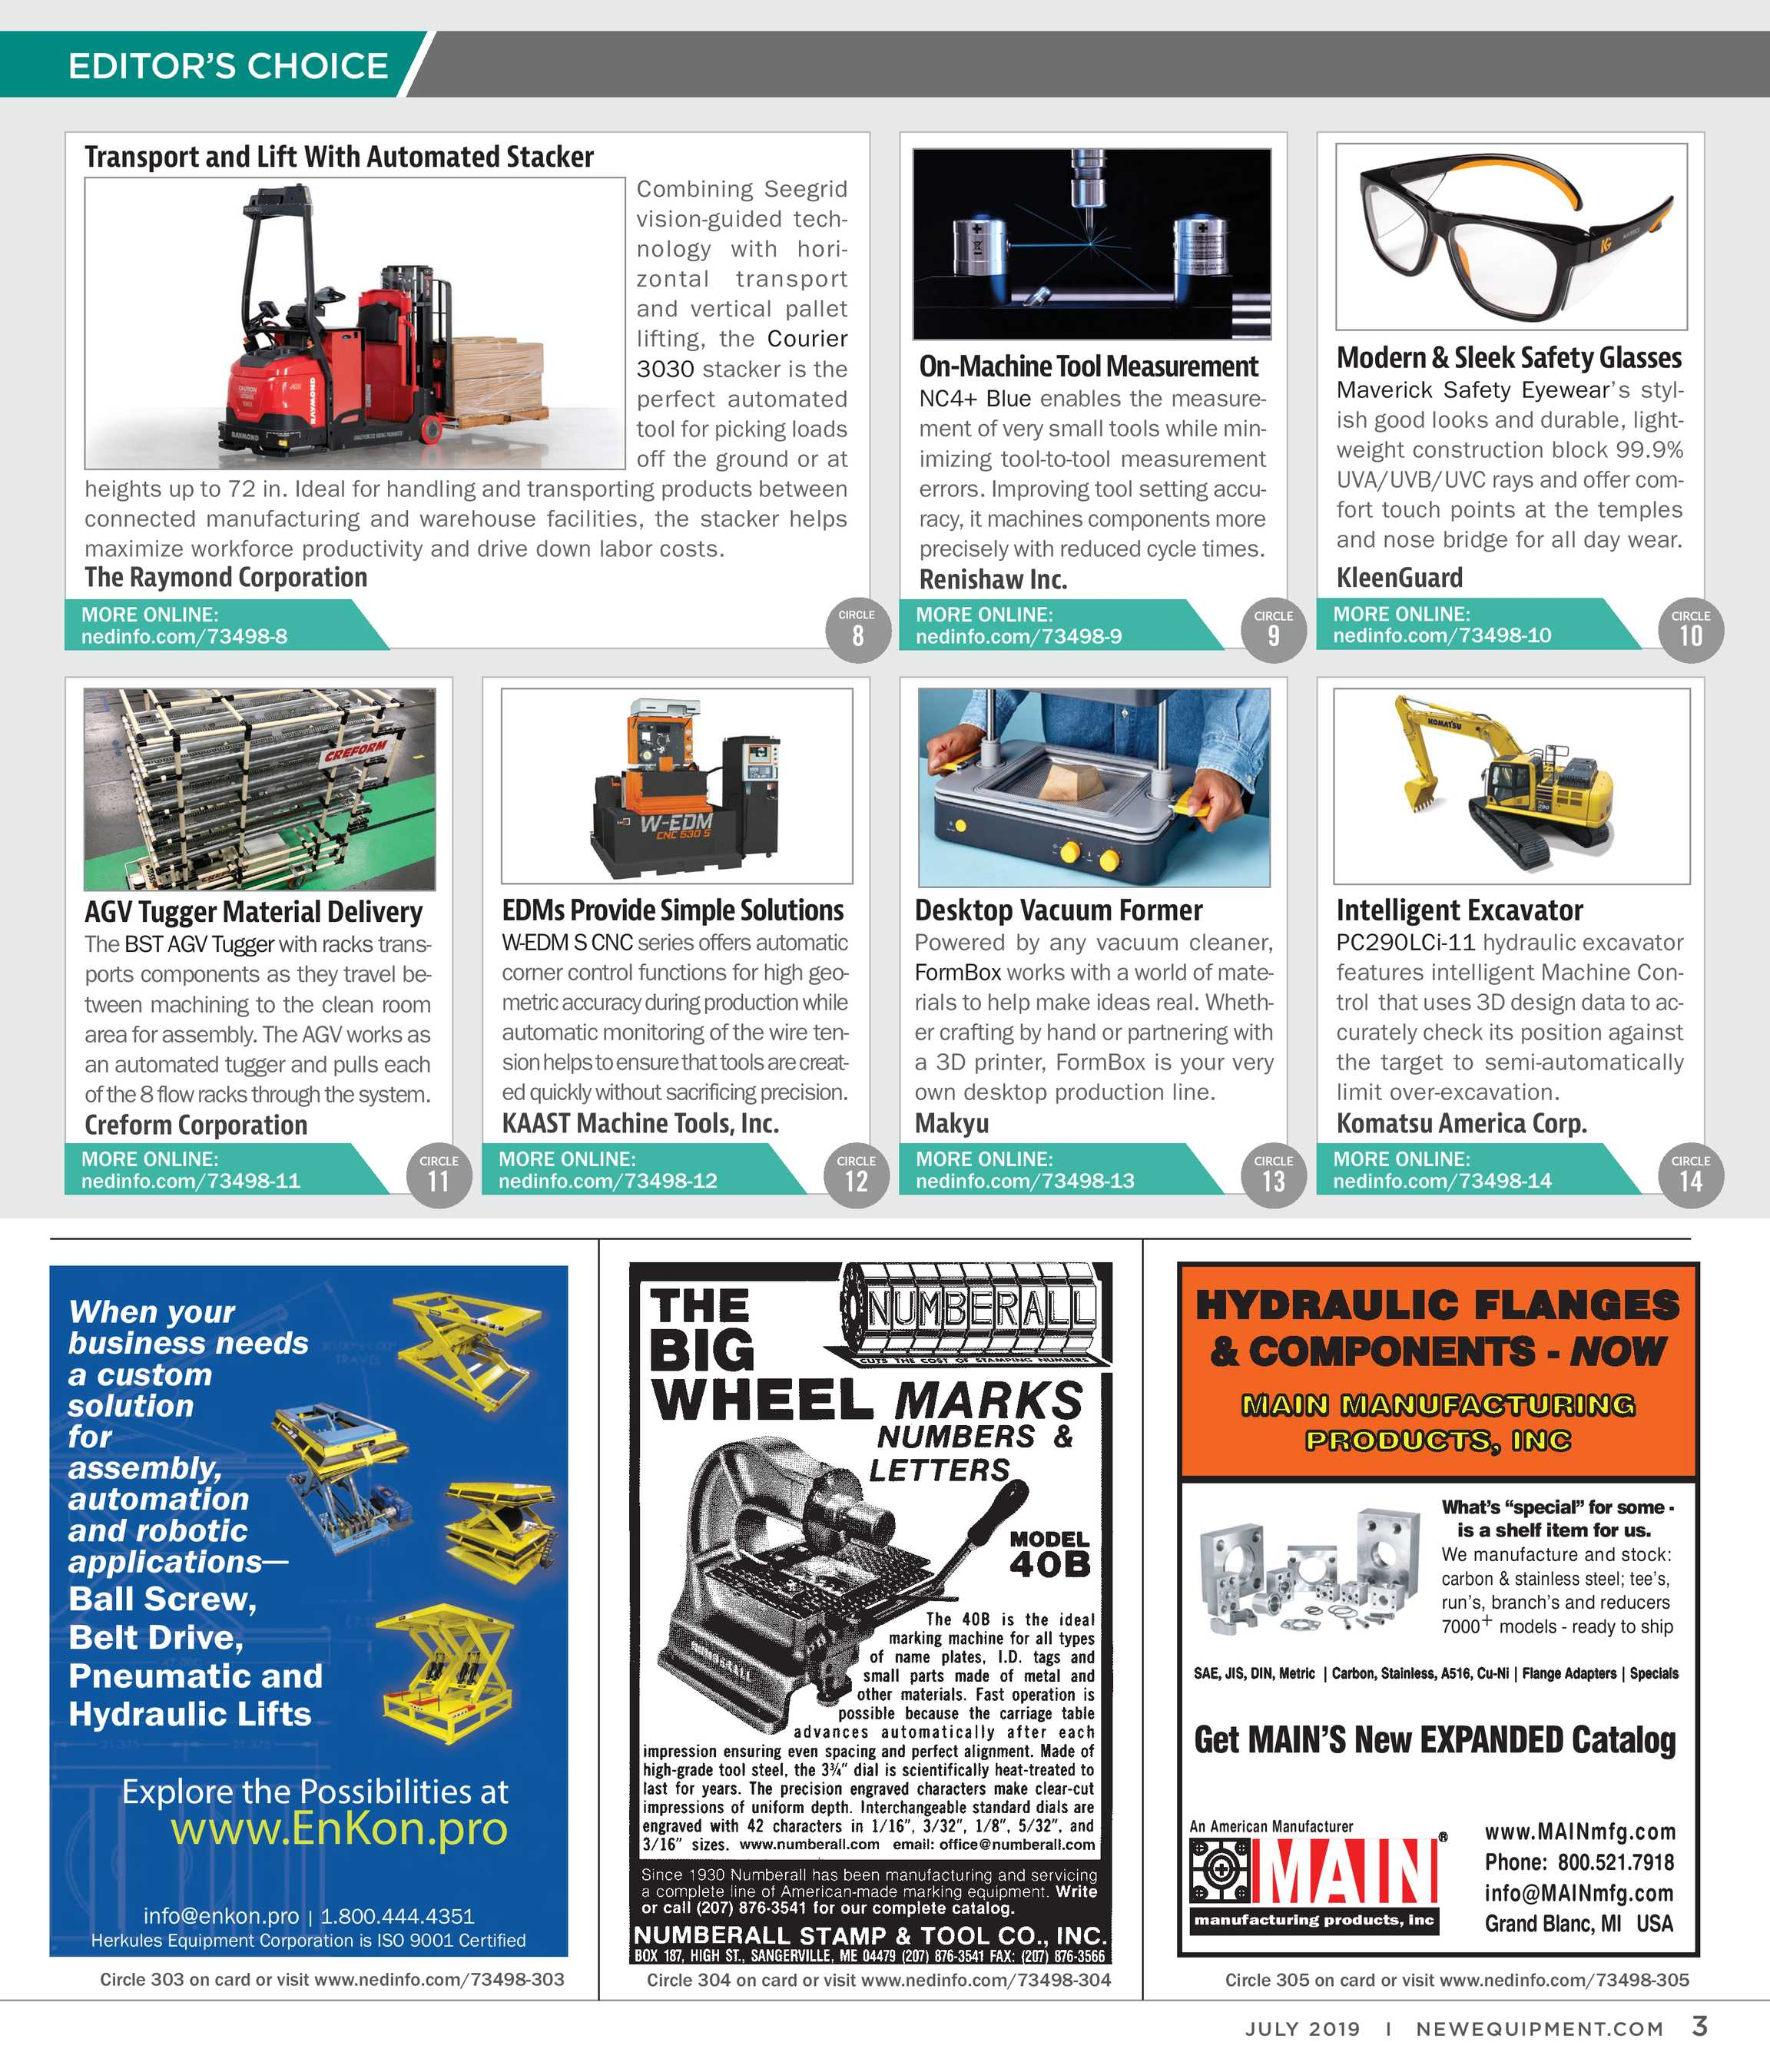 New Equipment Digest - July 2019 - page 3